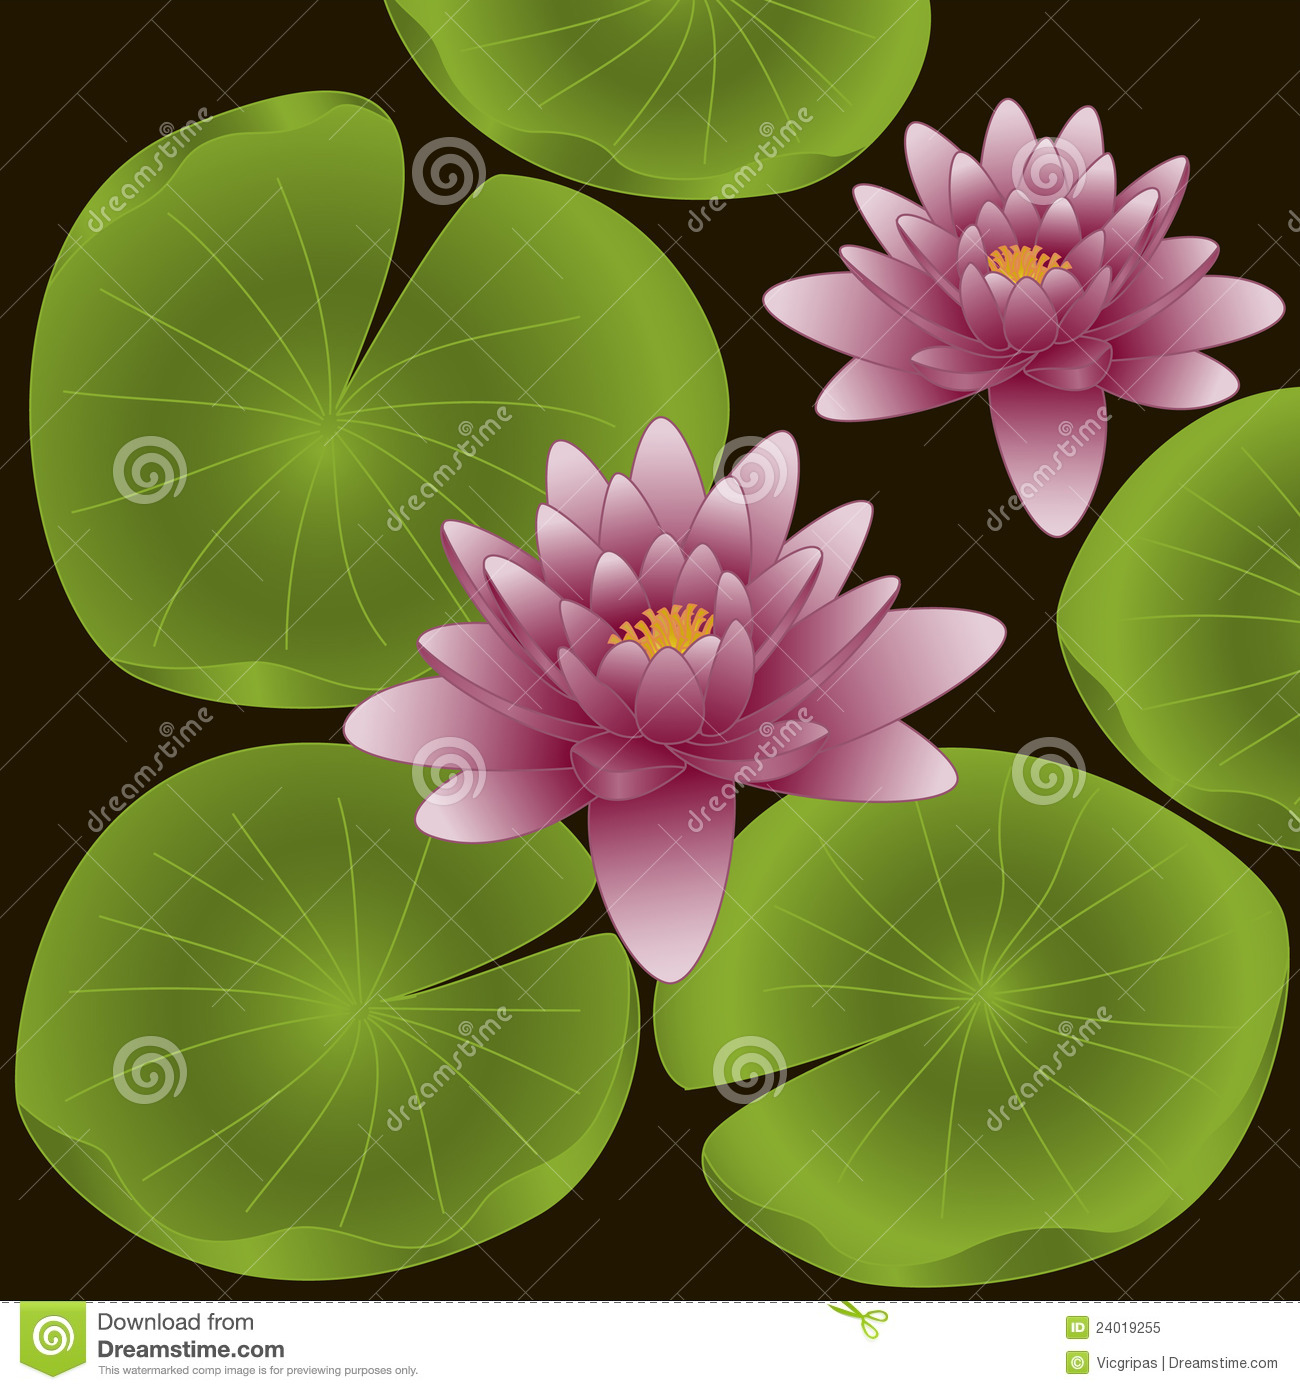 Lotus Flowers Vector Illustration Stock Vector Illustration Of